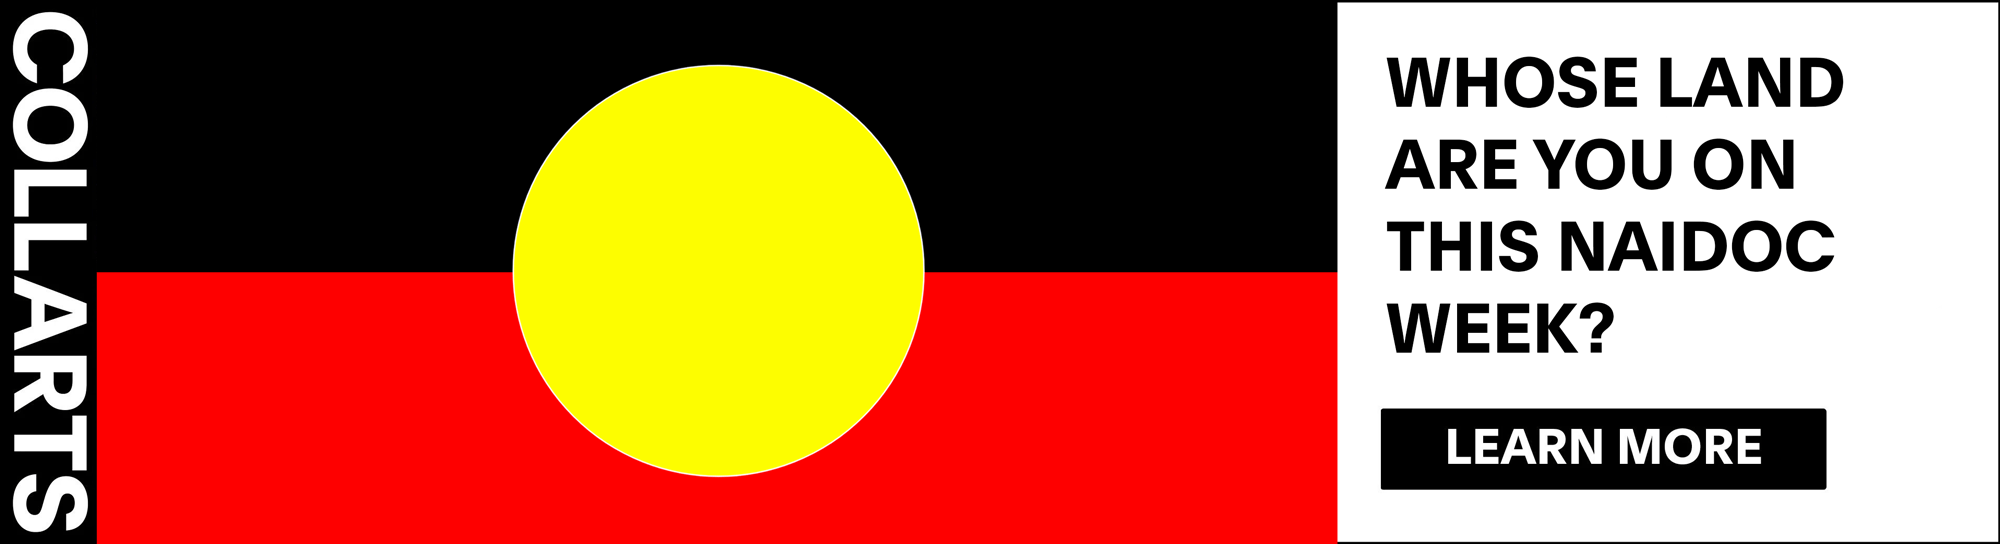 Whose Land Are You On This NAIDOC Week?